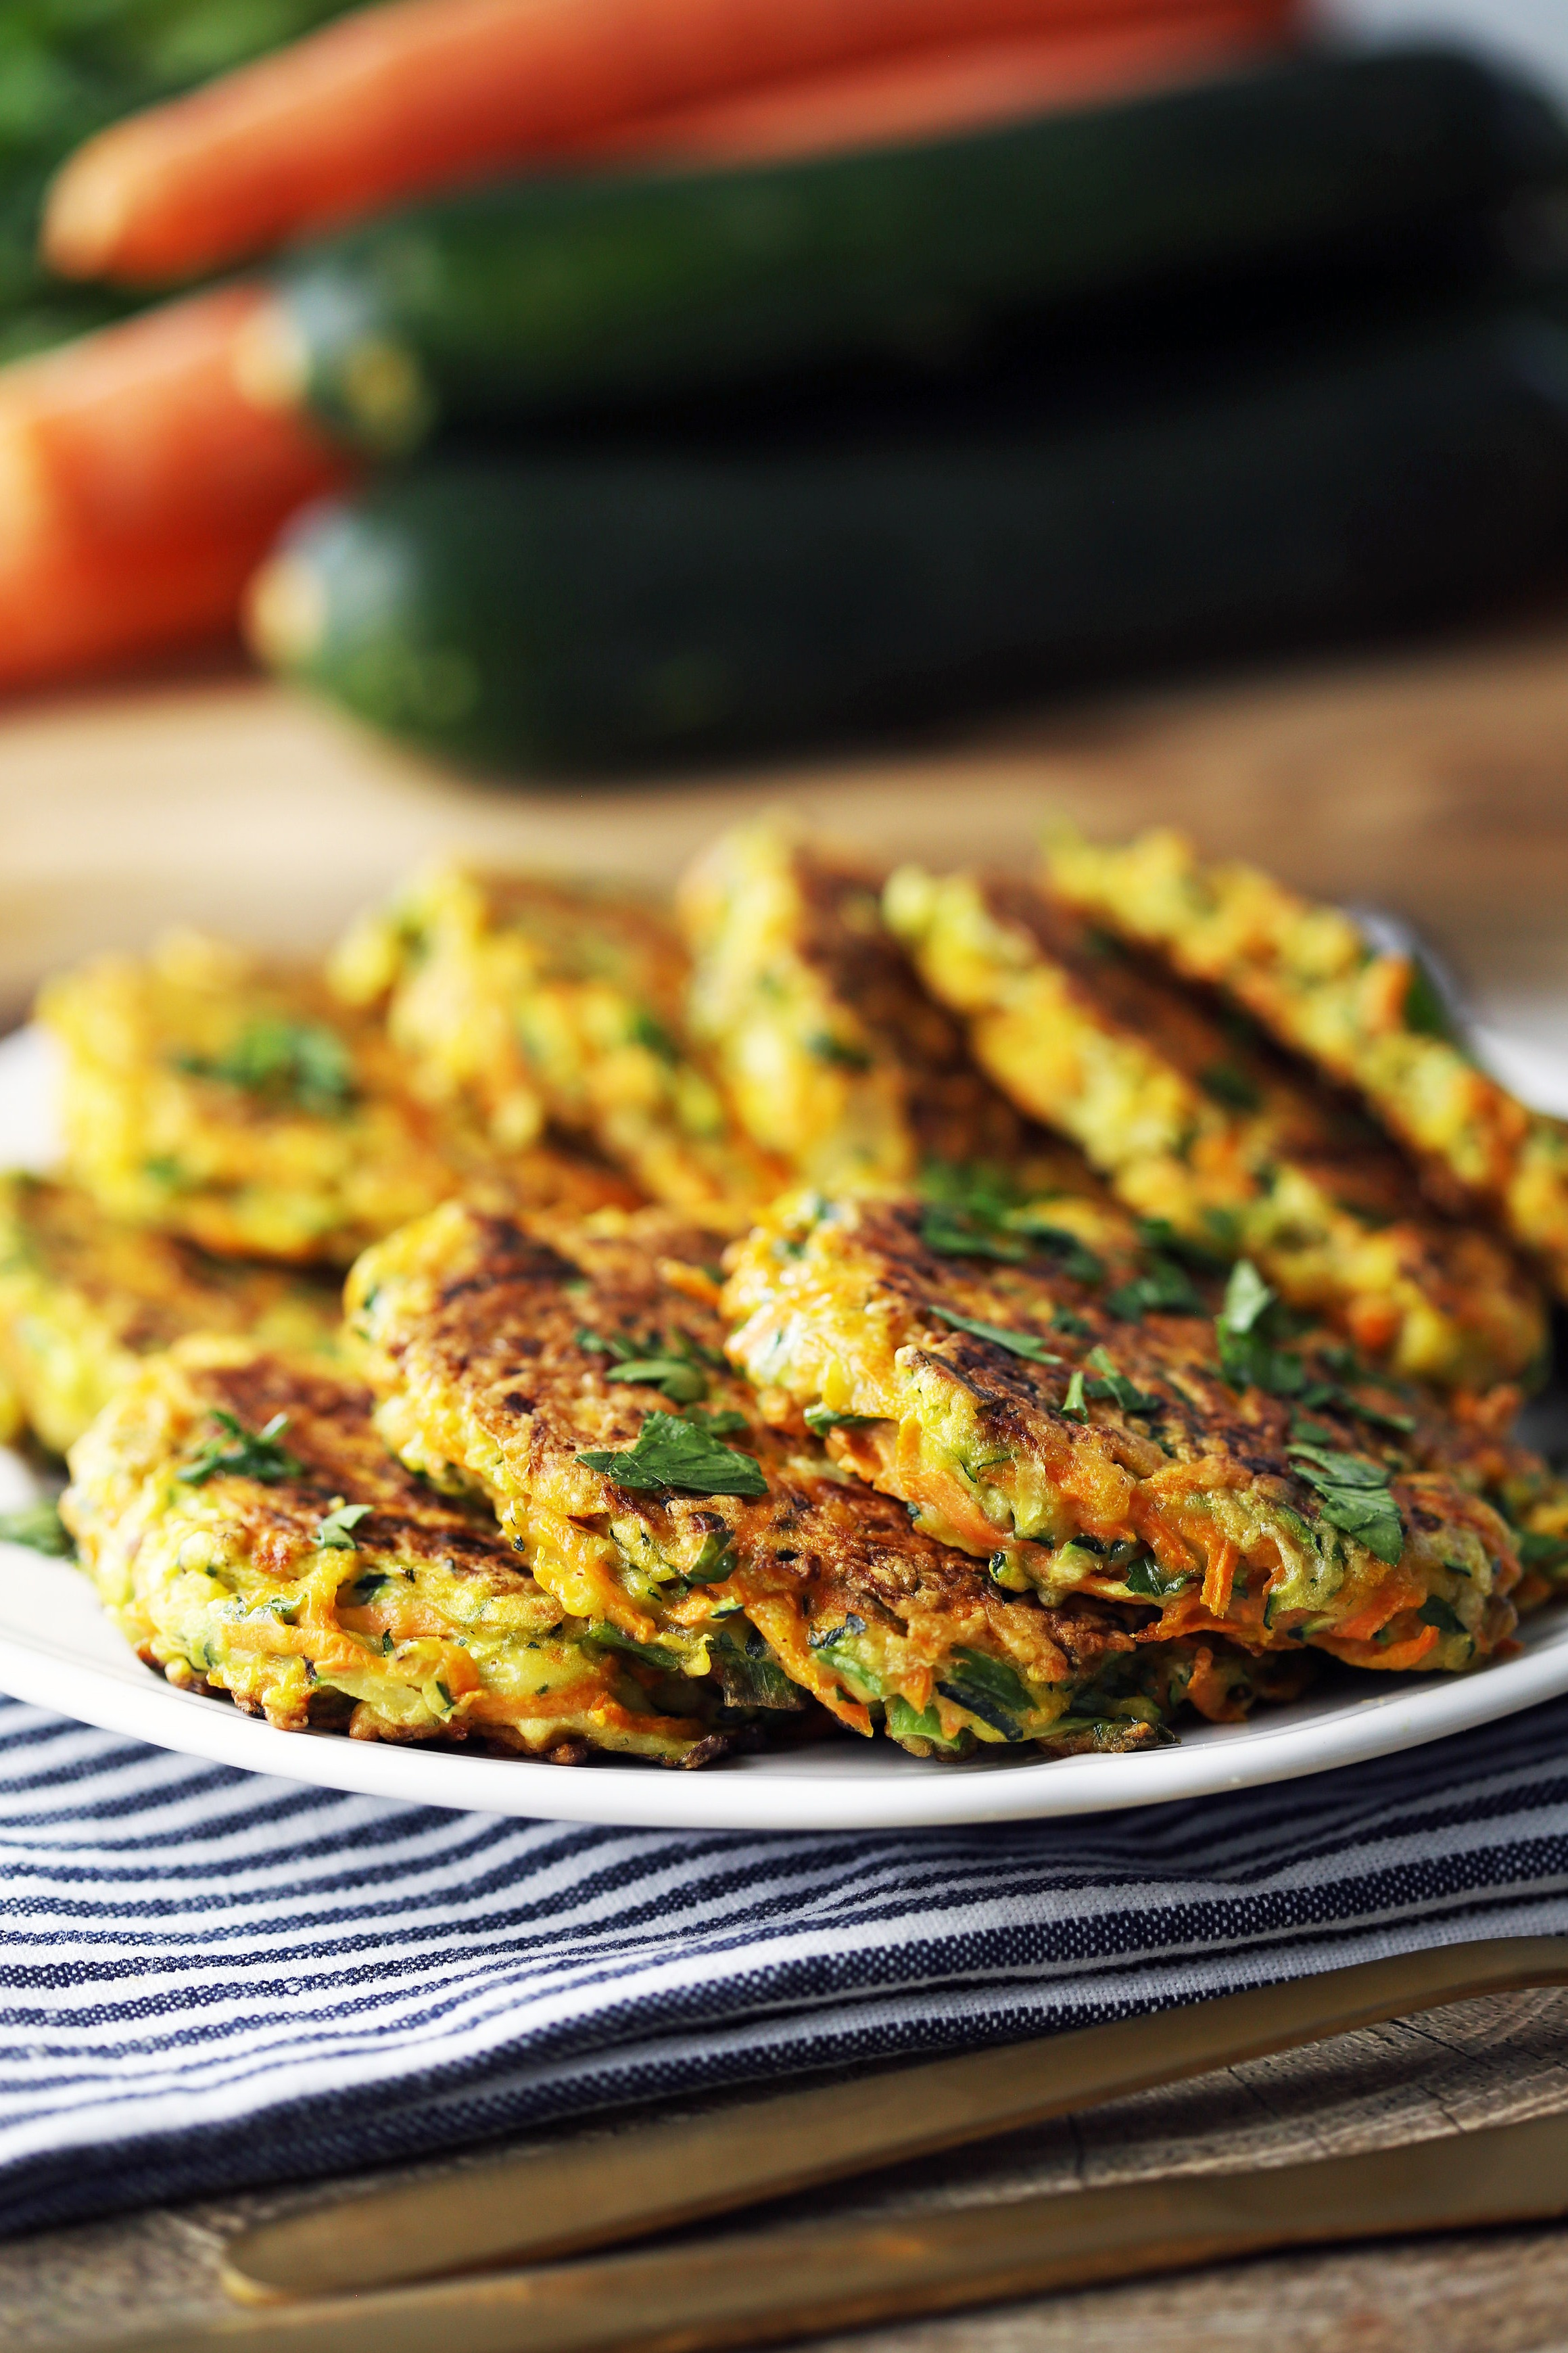 Eight zucchini carrot pancakes topped with fresh parsley on a white plate.